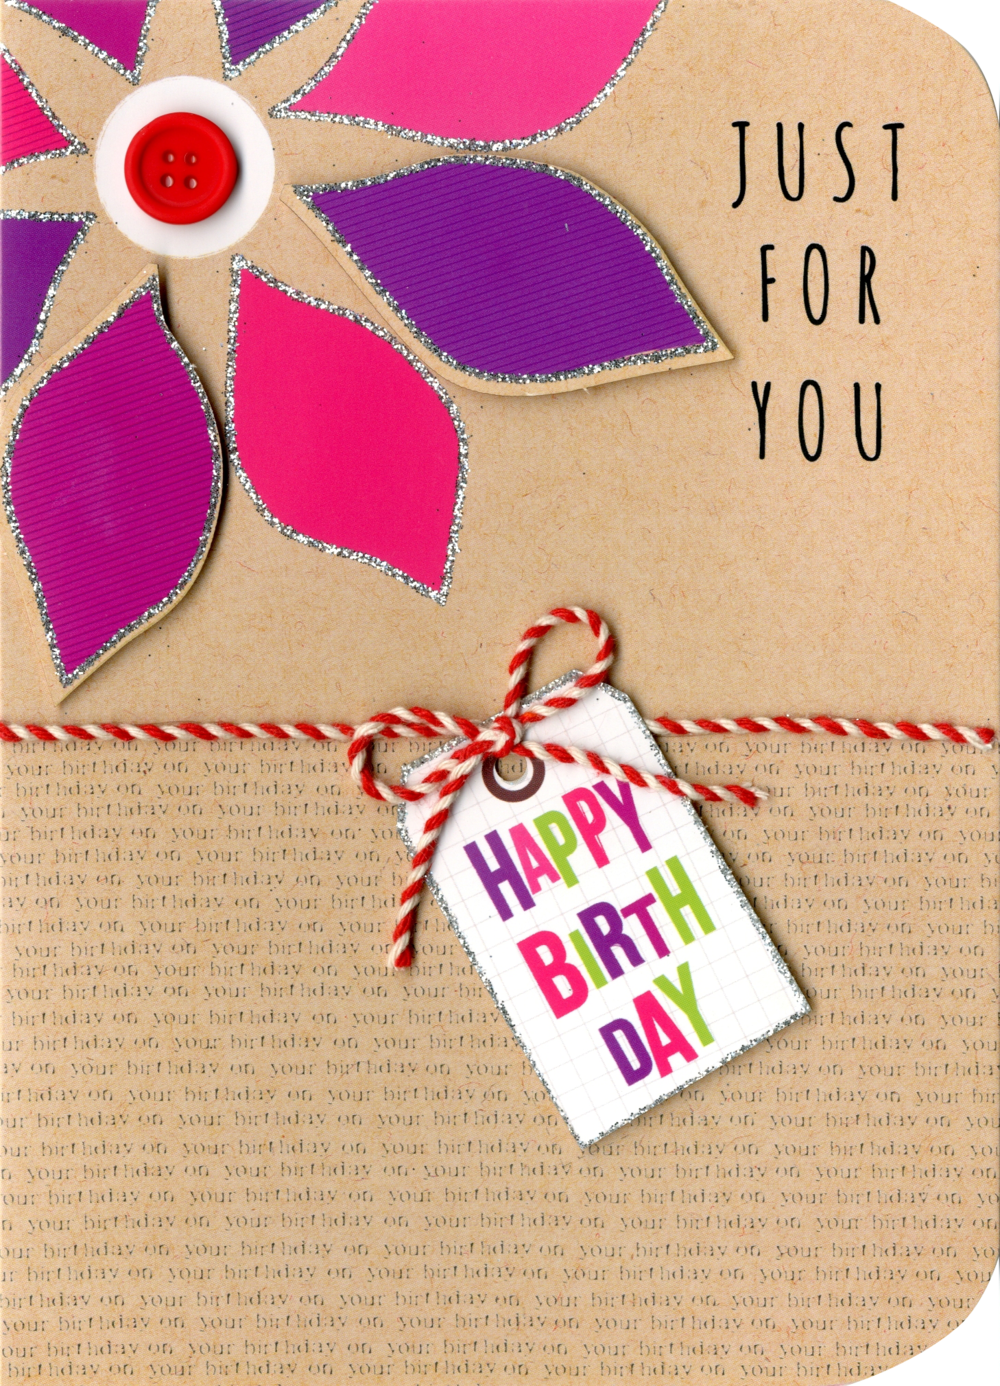 Just For You Birthday Embellished Greeting Card